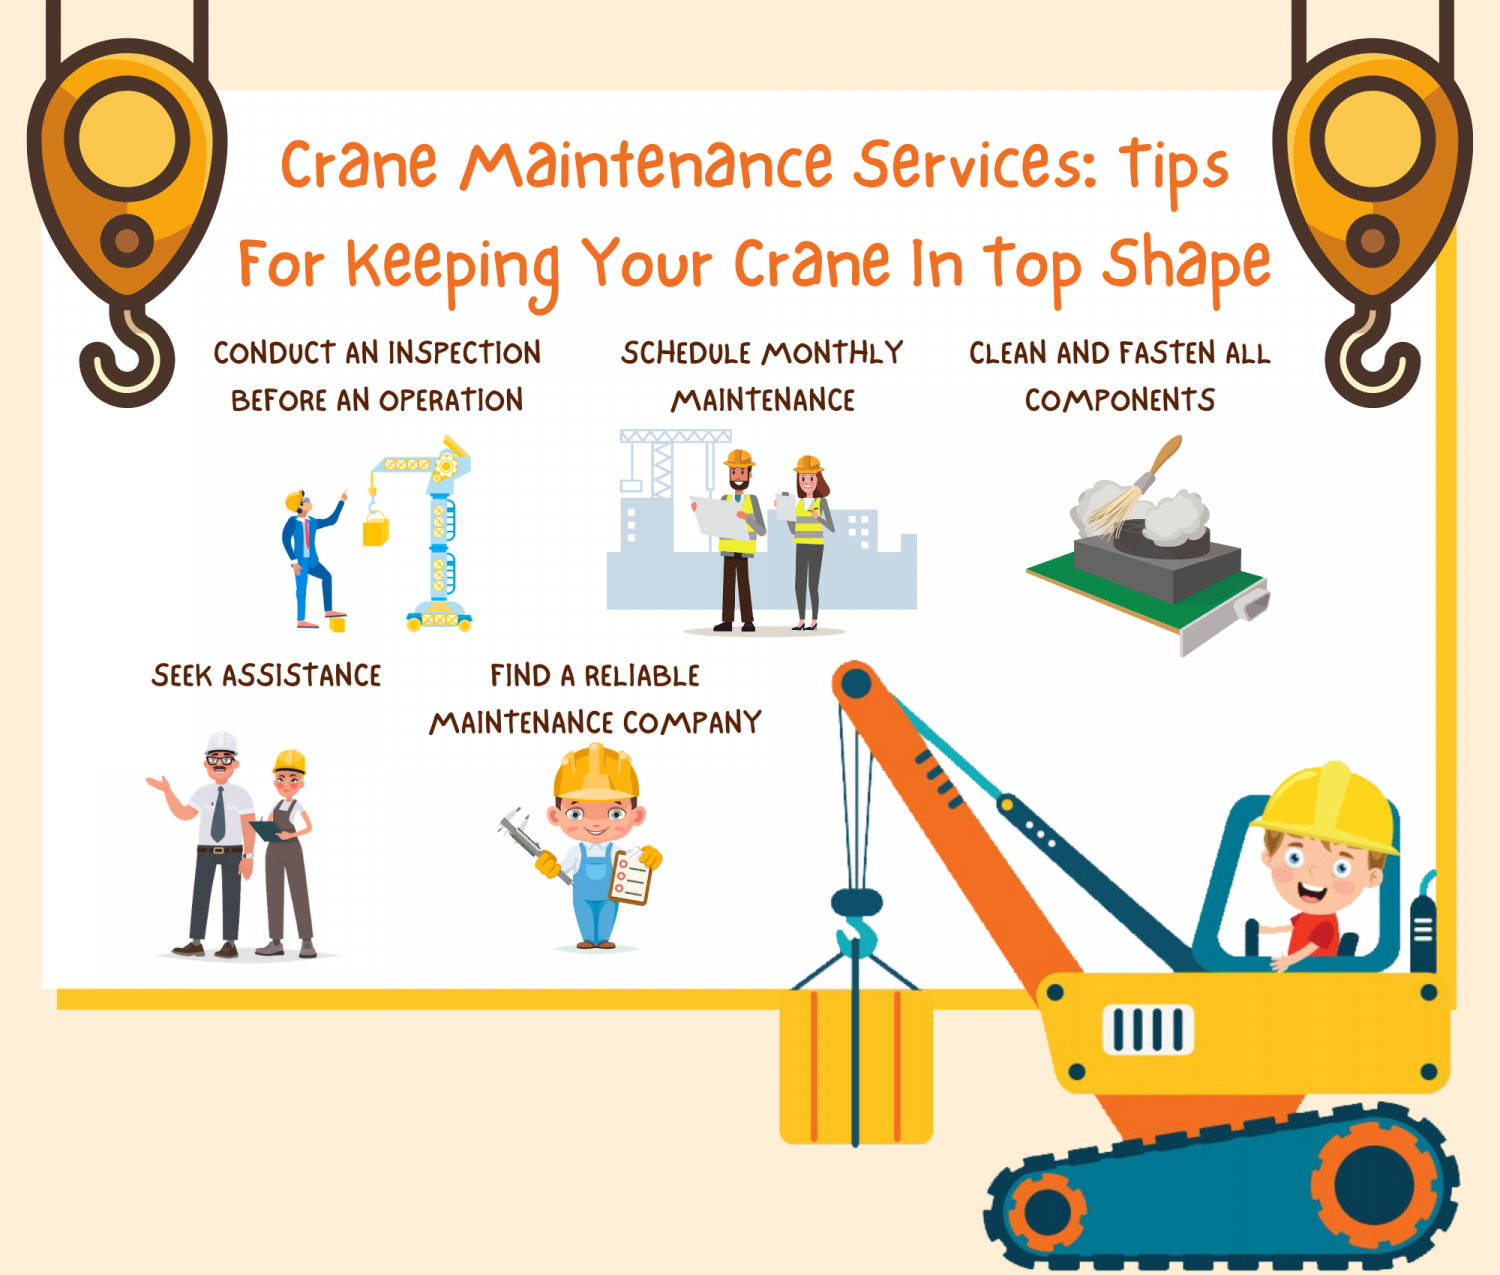 Crane Maintenance Services: Tips For Keeping Your Crane In Top Shape Infographic